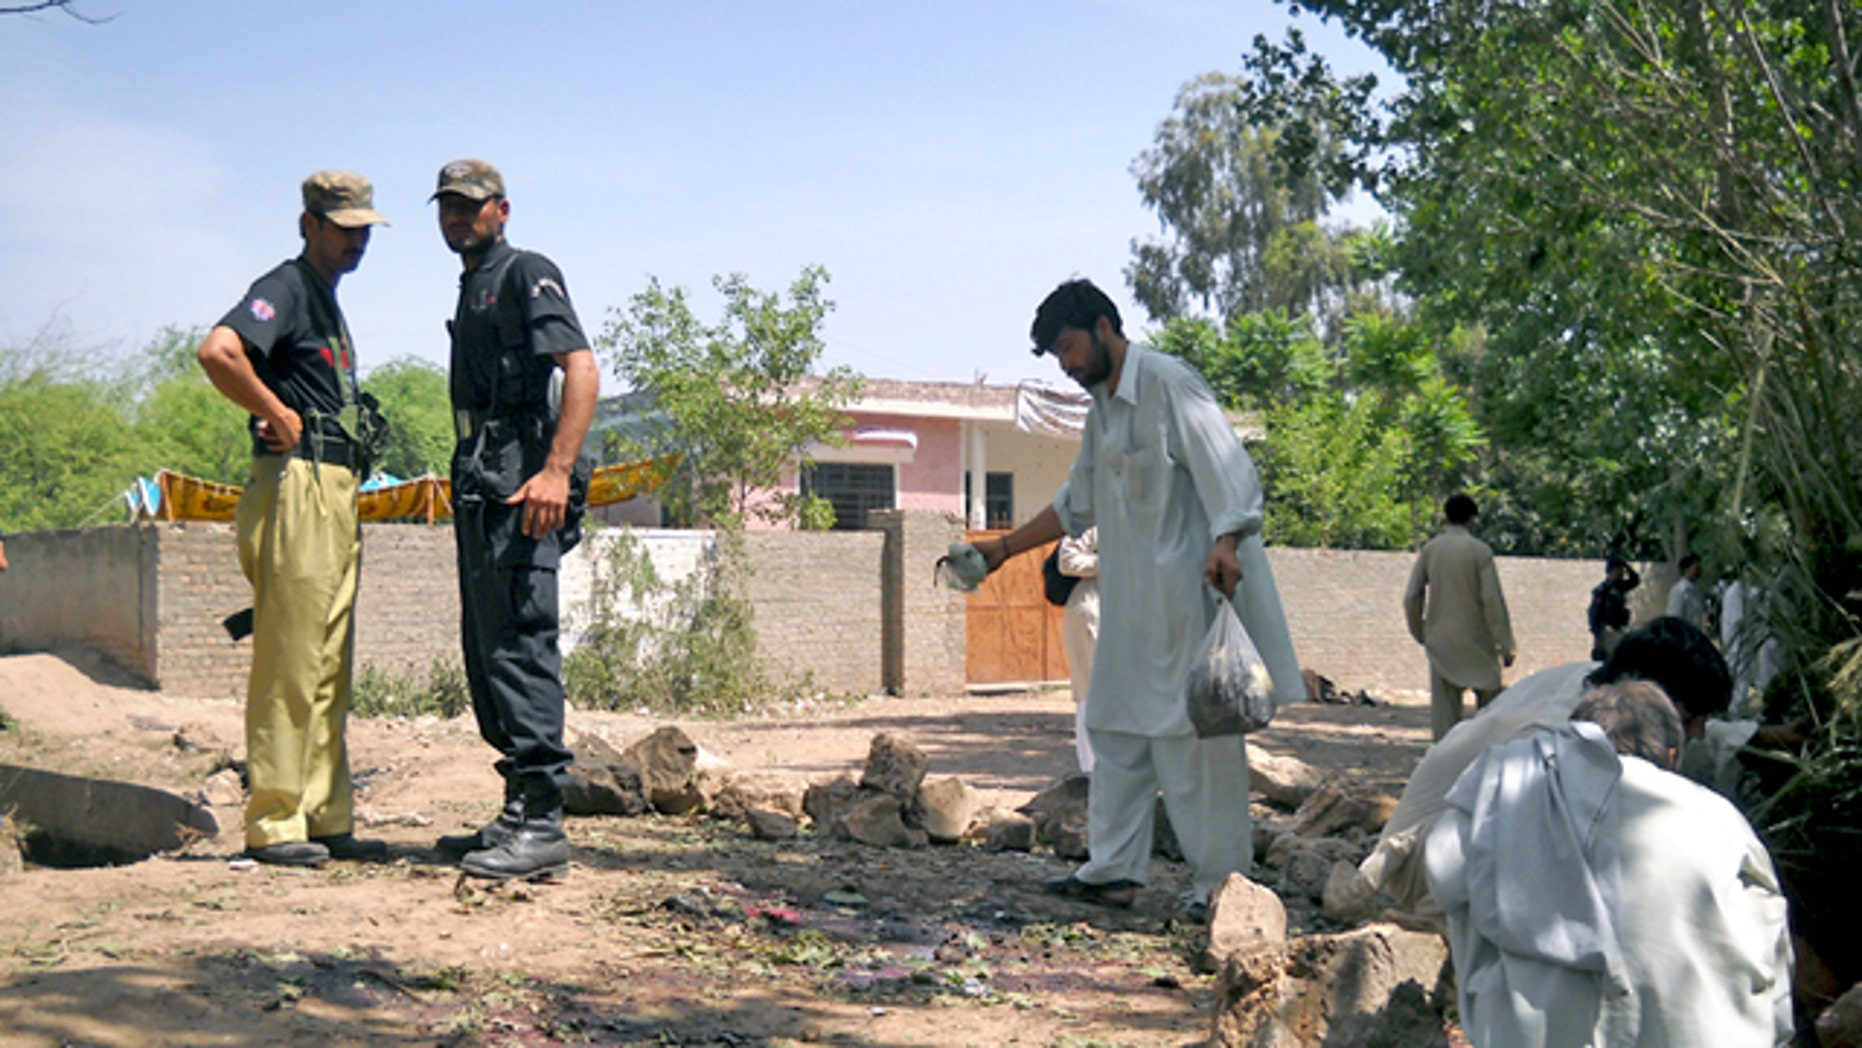 Pakistani police officers and rescue worker inspect the site of homicide bombing in Kacha Pukka area near Kohat, Pakistan. (AP)